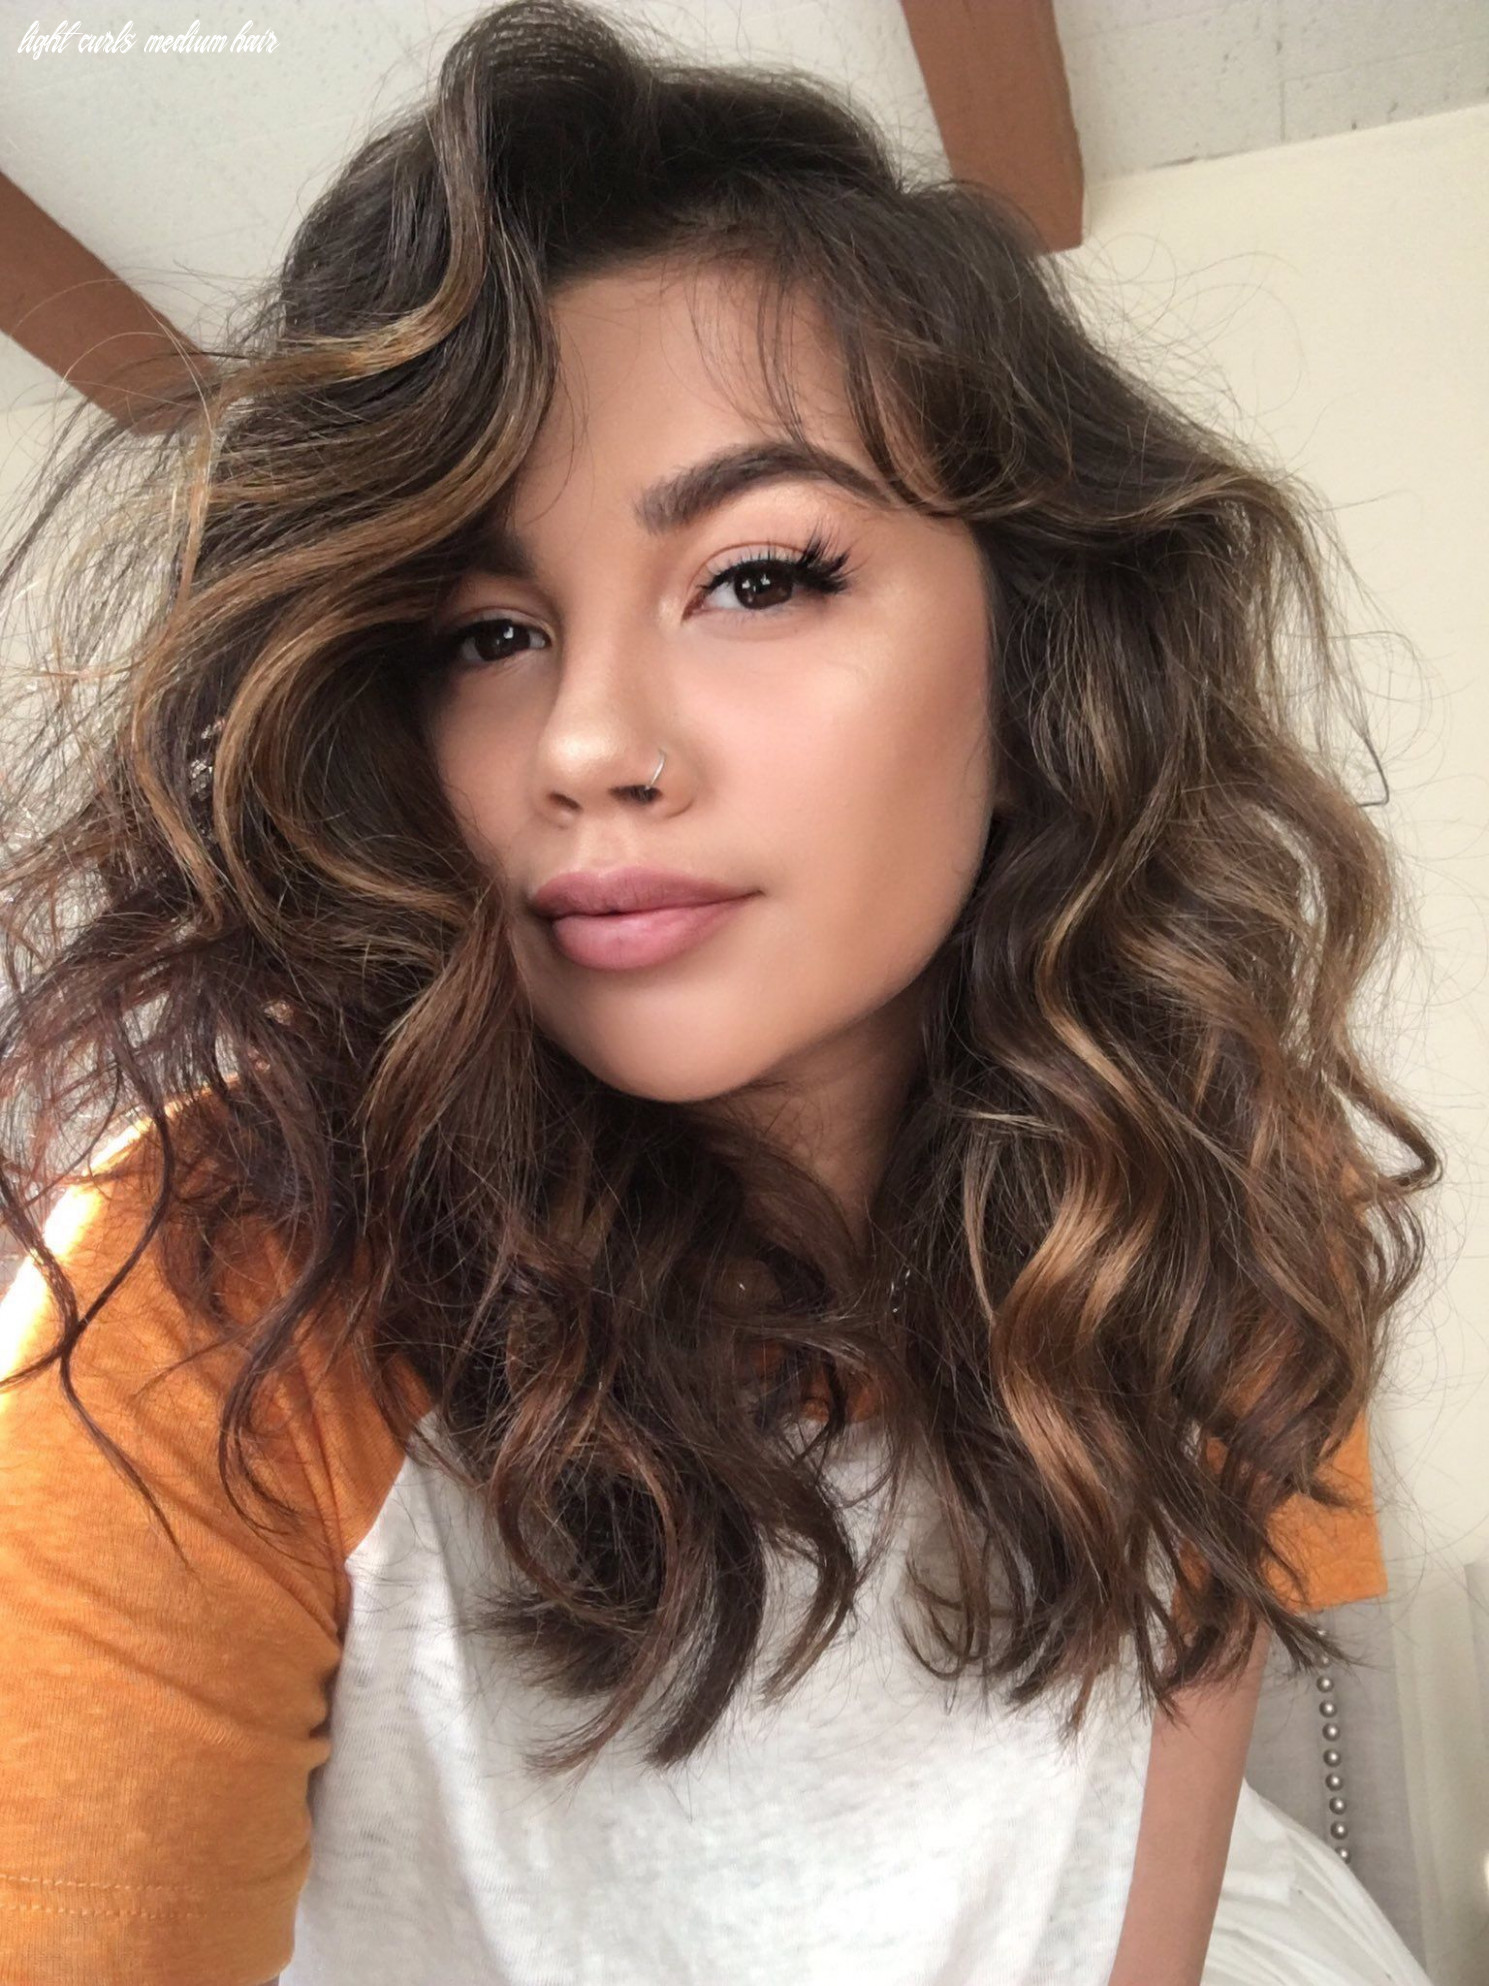 Pin by Karla Torrejon on Hair | Curled hairstyles for medium hair ...